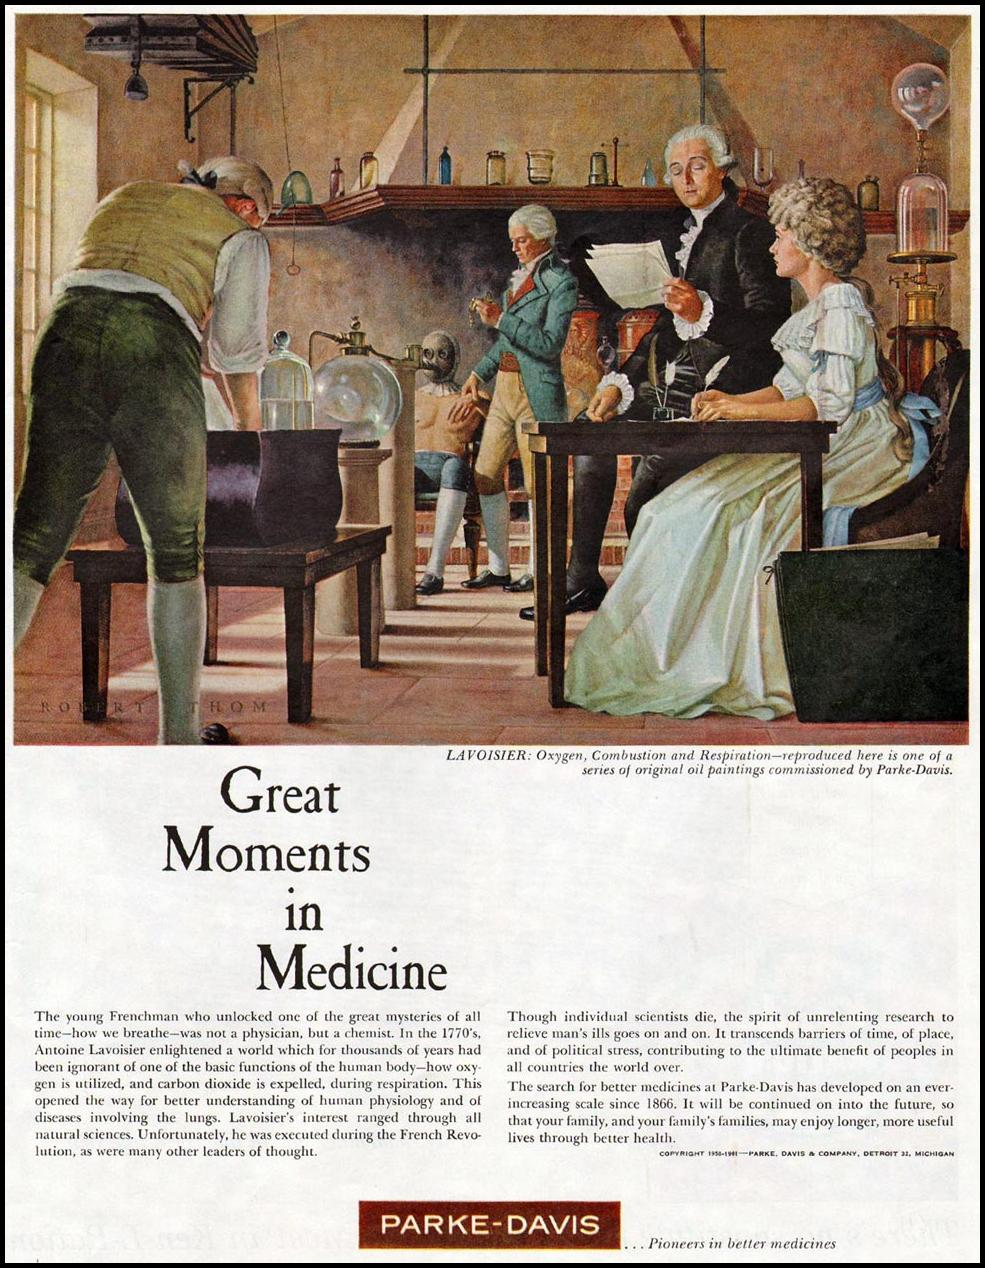 PHARMACEUTICALS LADIES' HOME JOURNAL 06/01/1961 p. 21